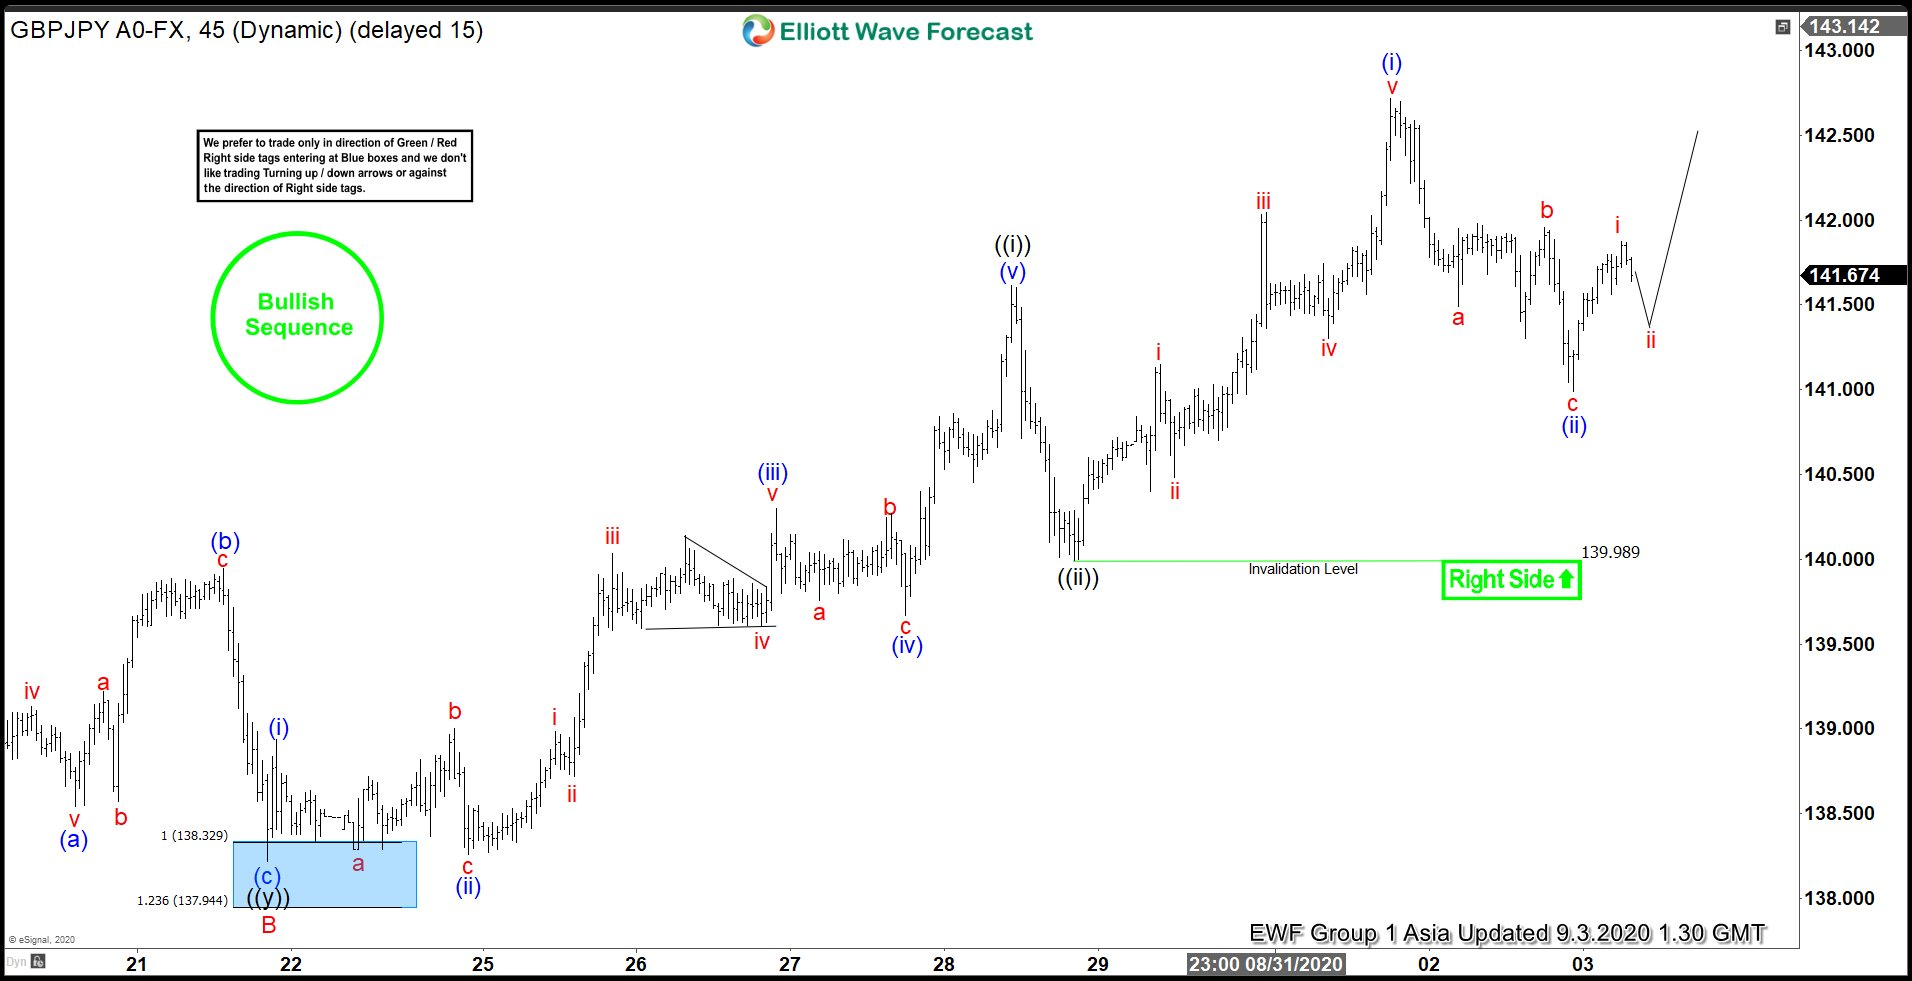 Elliott Wave View: Bullish Sequence in GBPJPY